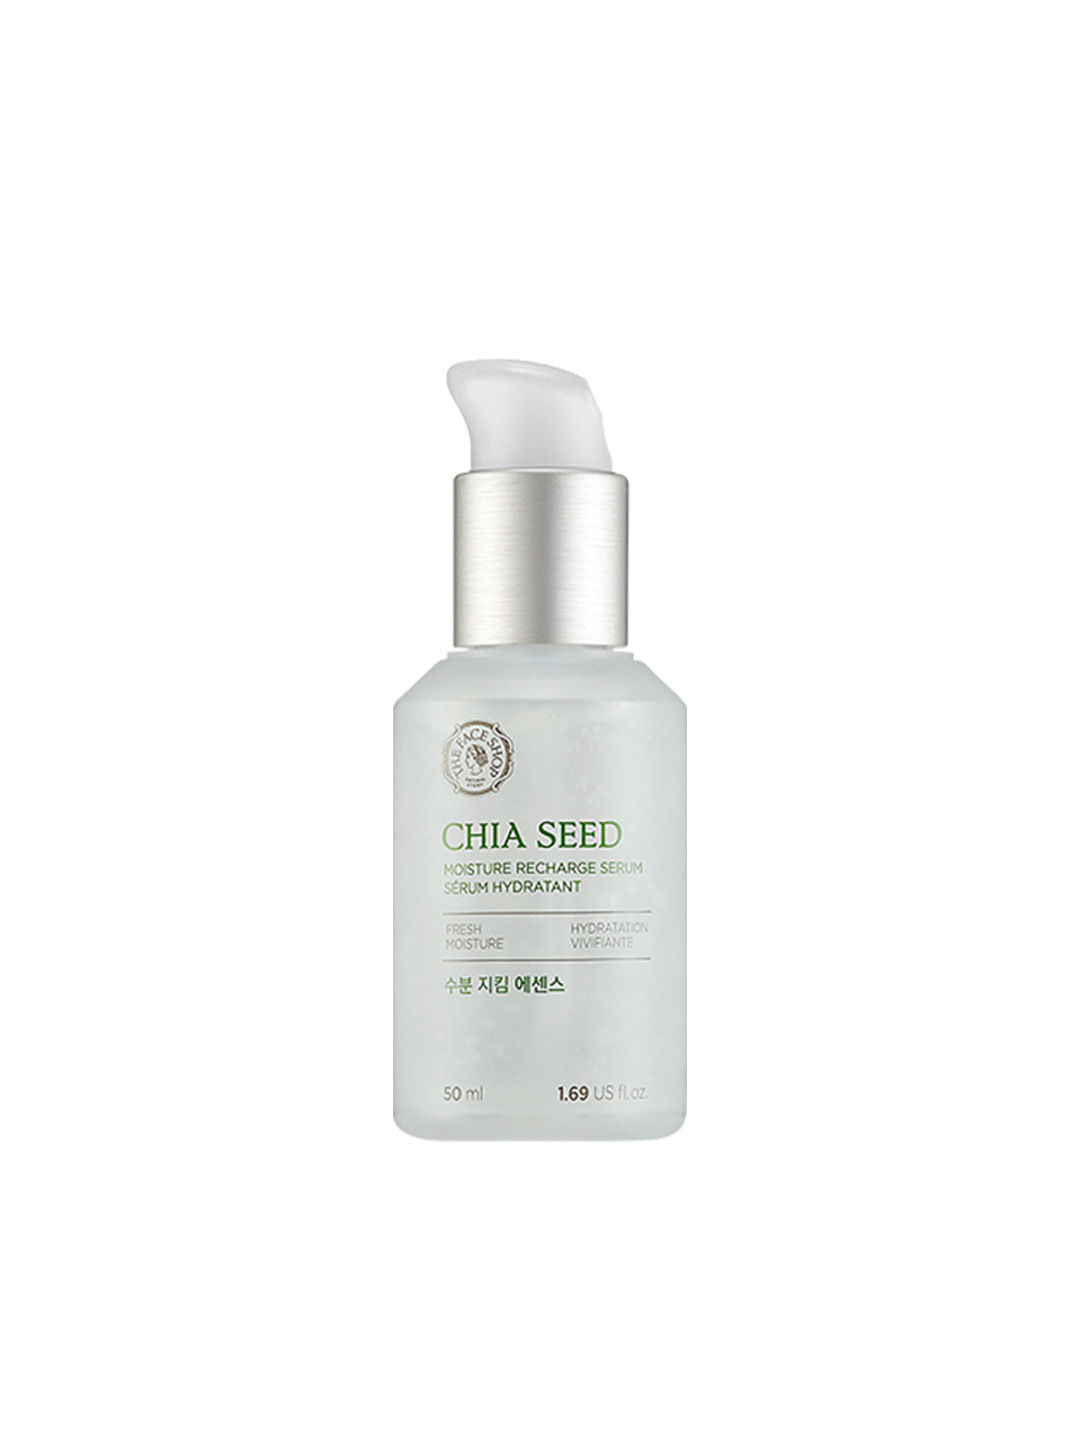 The Face Shop Chia Seed Moisture Recharge Serum at Nykaa com